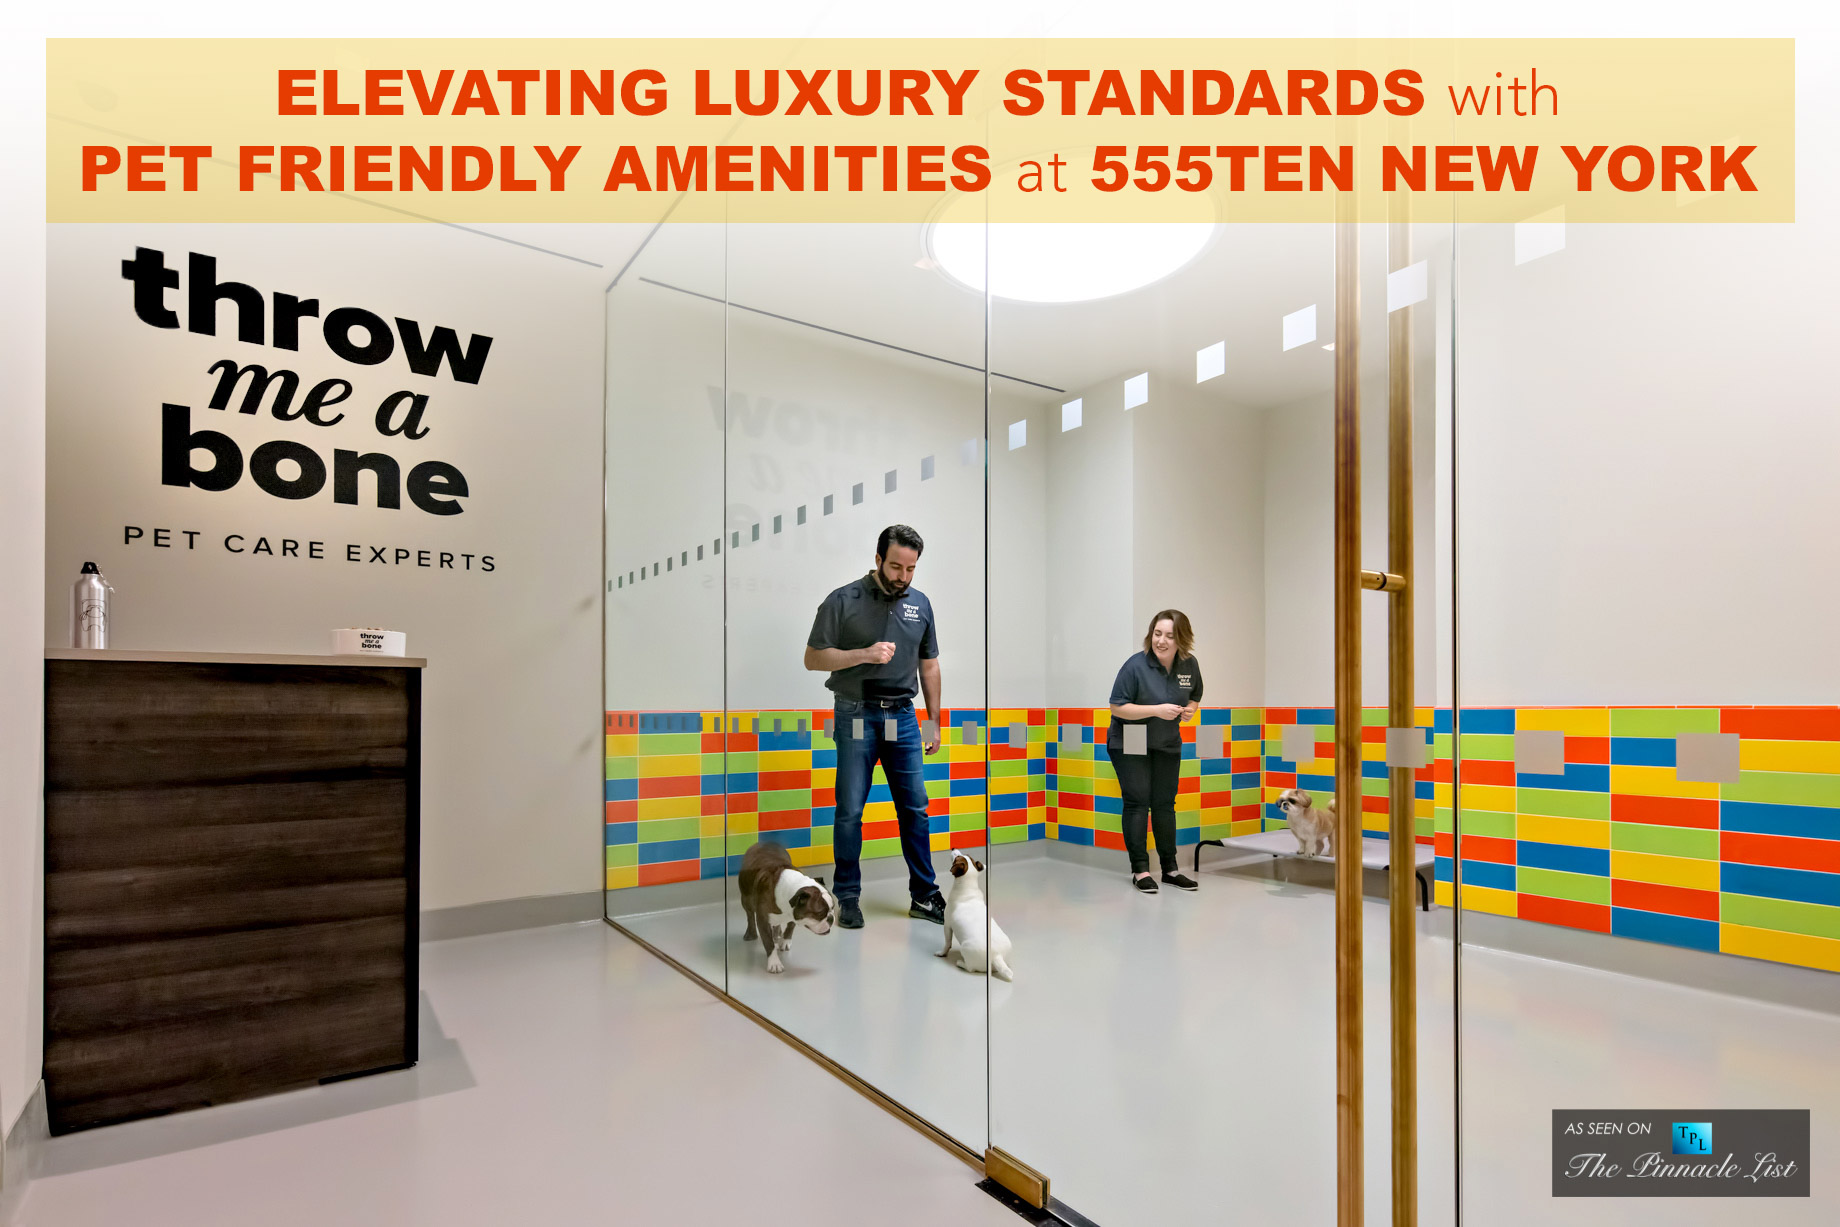 Elevating Luxury Standards with Pet Friendly Amenities at 555Ten New York